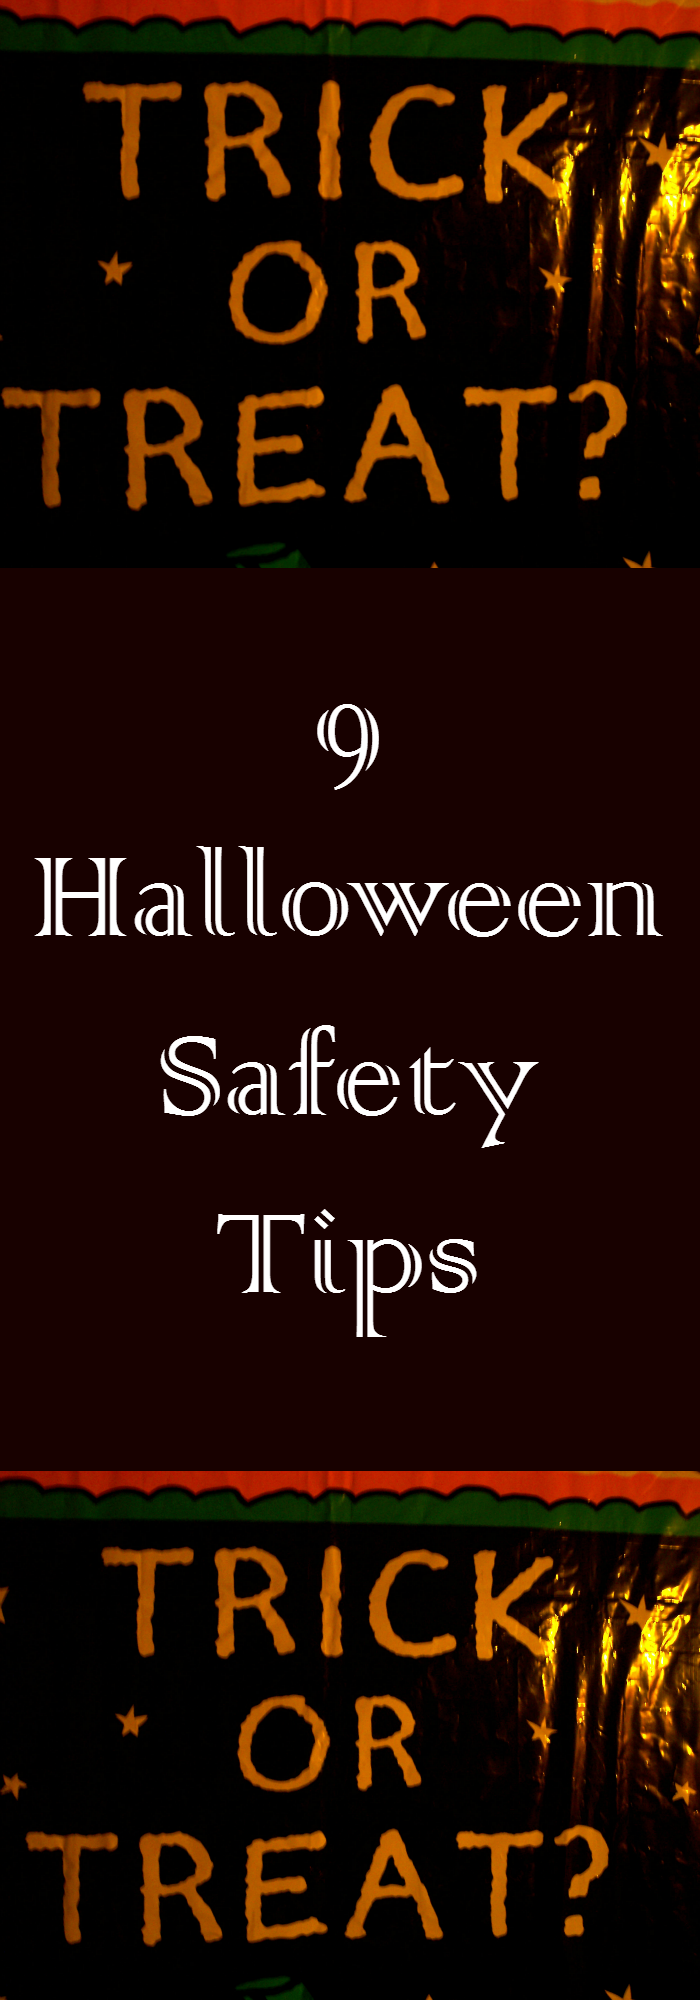 Follow these simple Halloween Safety Tips to ensure that you and your family have safe and fun day trick-or-treating. More at CleverlyMe.com